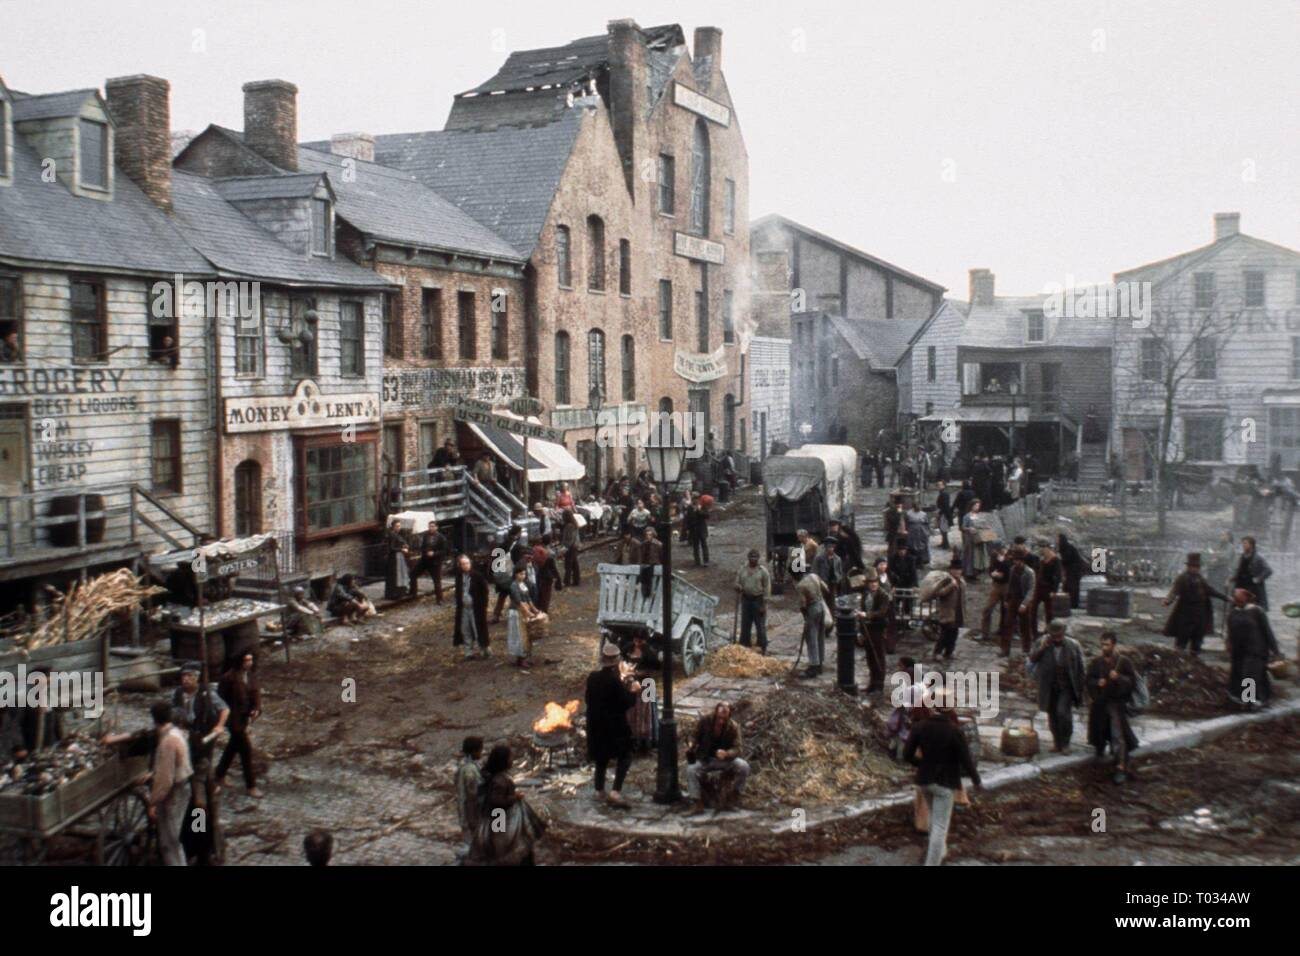 TOWN SCENE, GANGS OF NEW YORK, 2002 - Stock Image